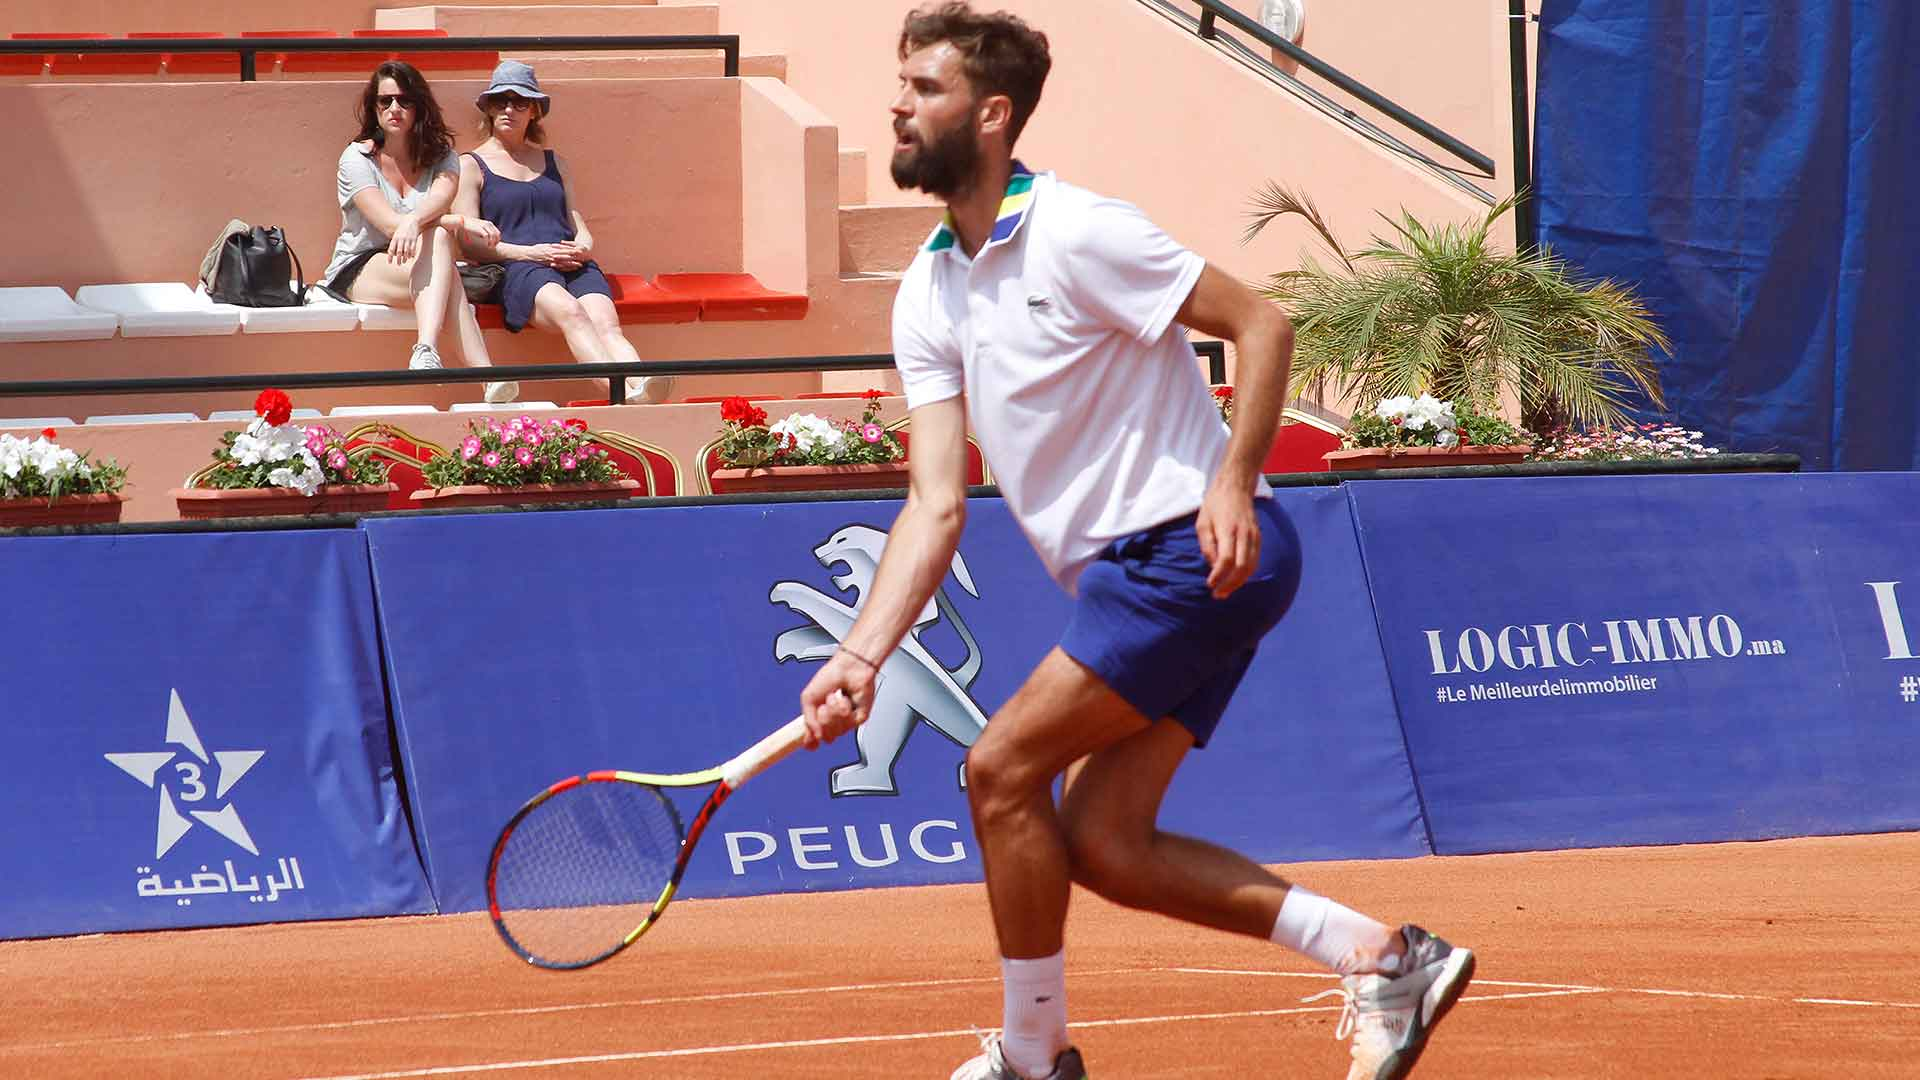 Paire tennis prediction